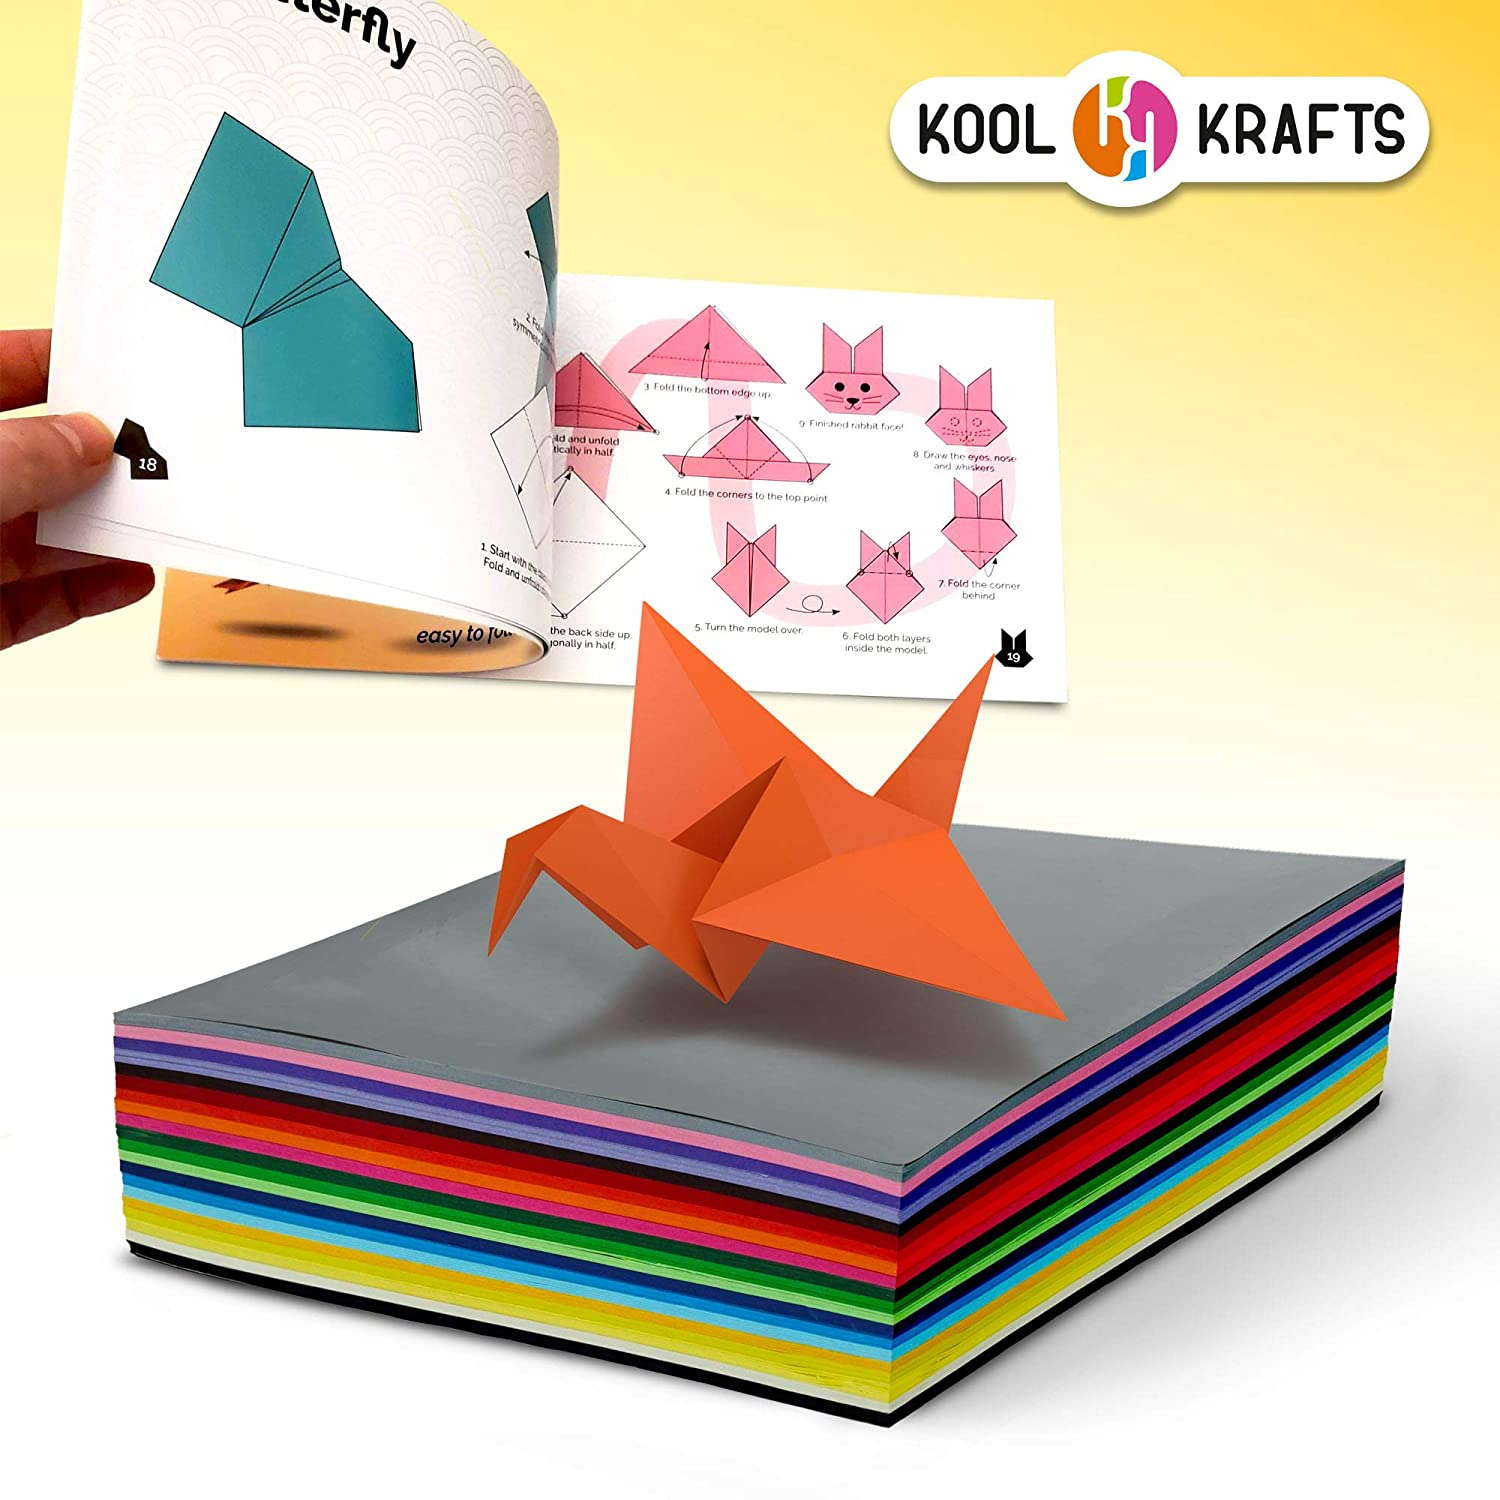 with 25 Easy Origami Projects Colored Book Kool Krafts Origami Paper 300 Sheets Same Color on Both Sides, 6-inch Square Sheets 20 Vibrant Colors Premium Quality for Arts and Crafts